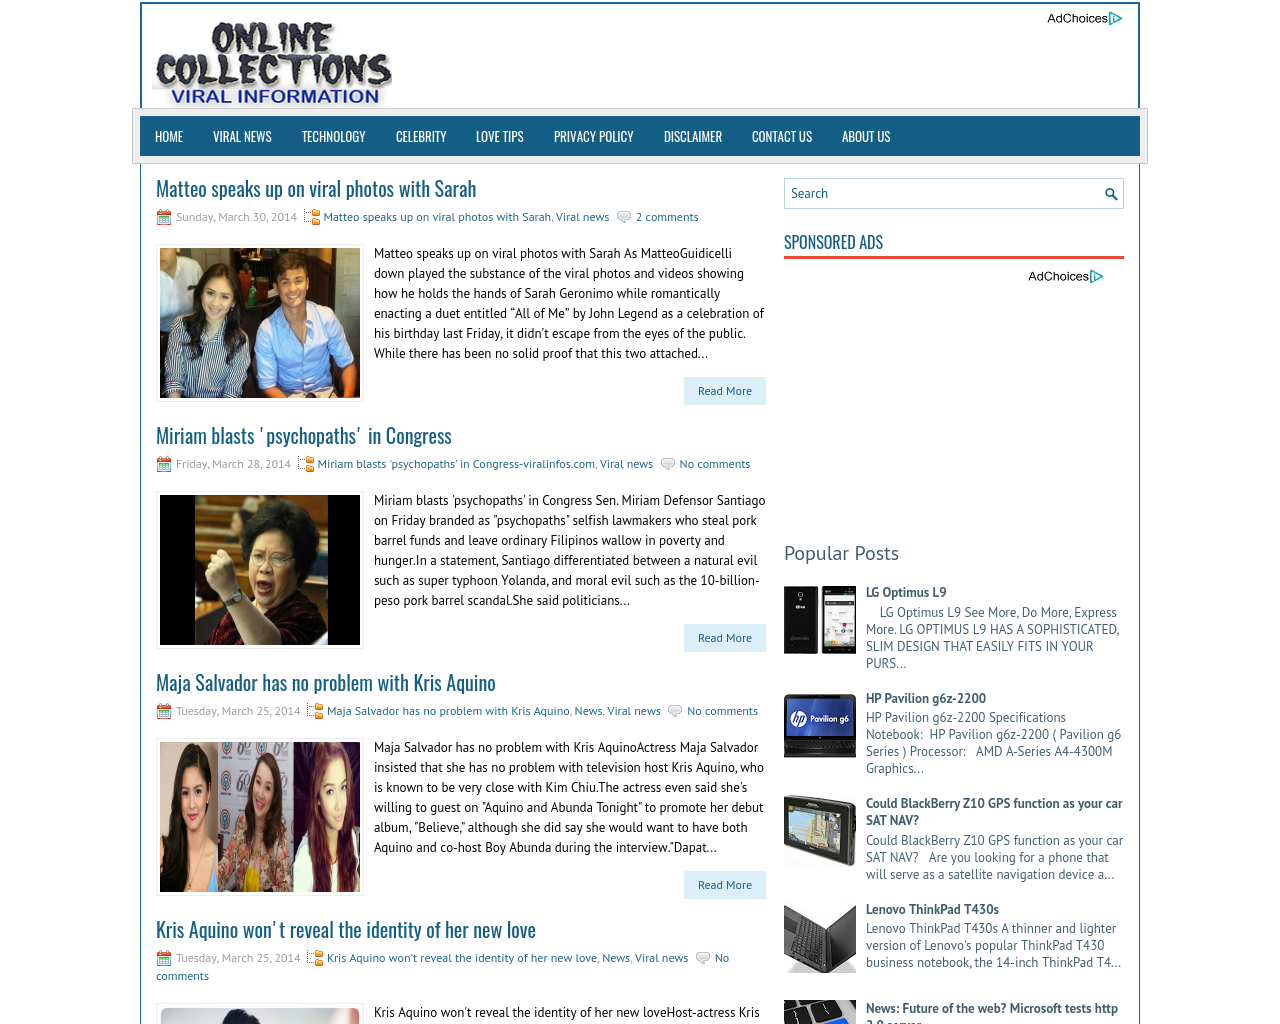 Online-Collections-Viral-Information-Advertising-Reviews-Pricing